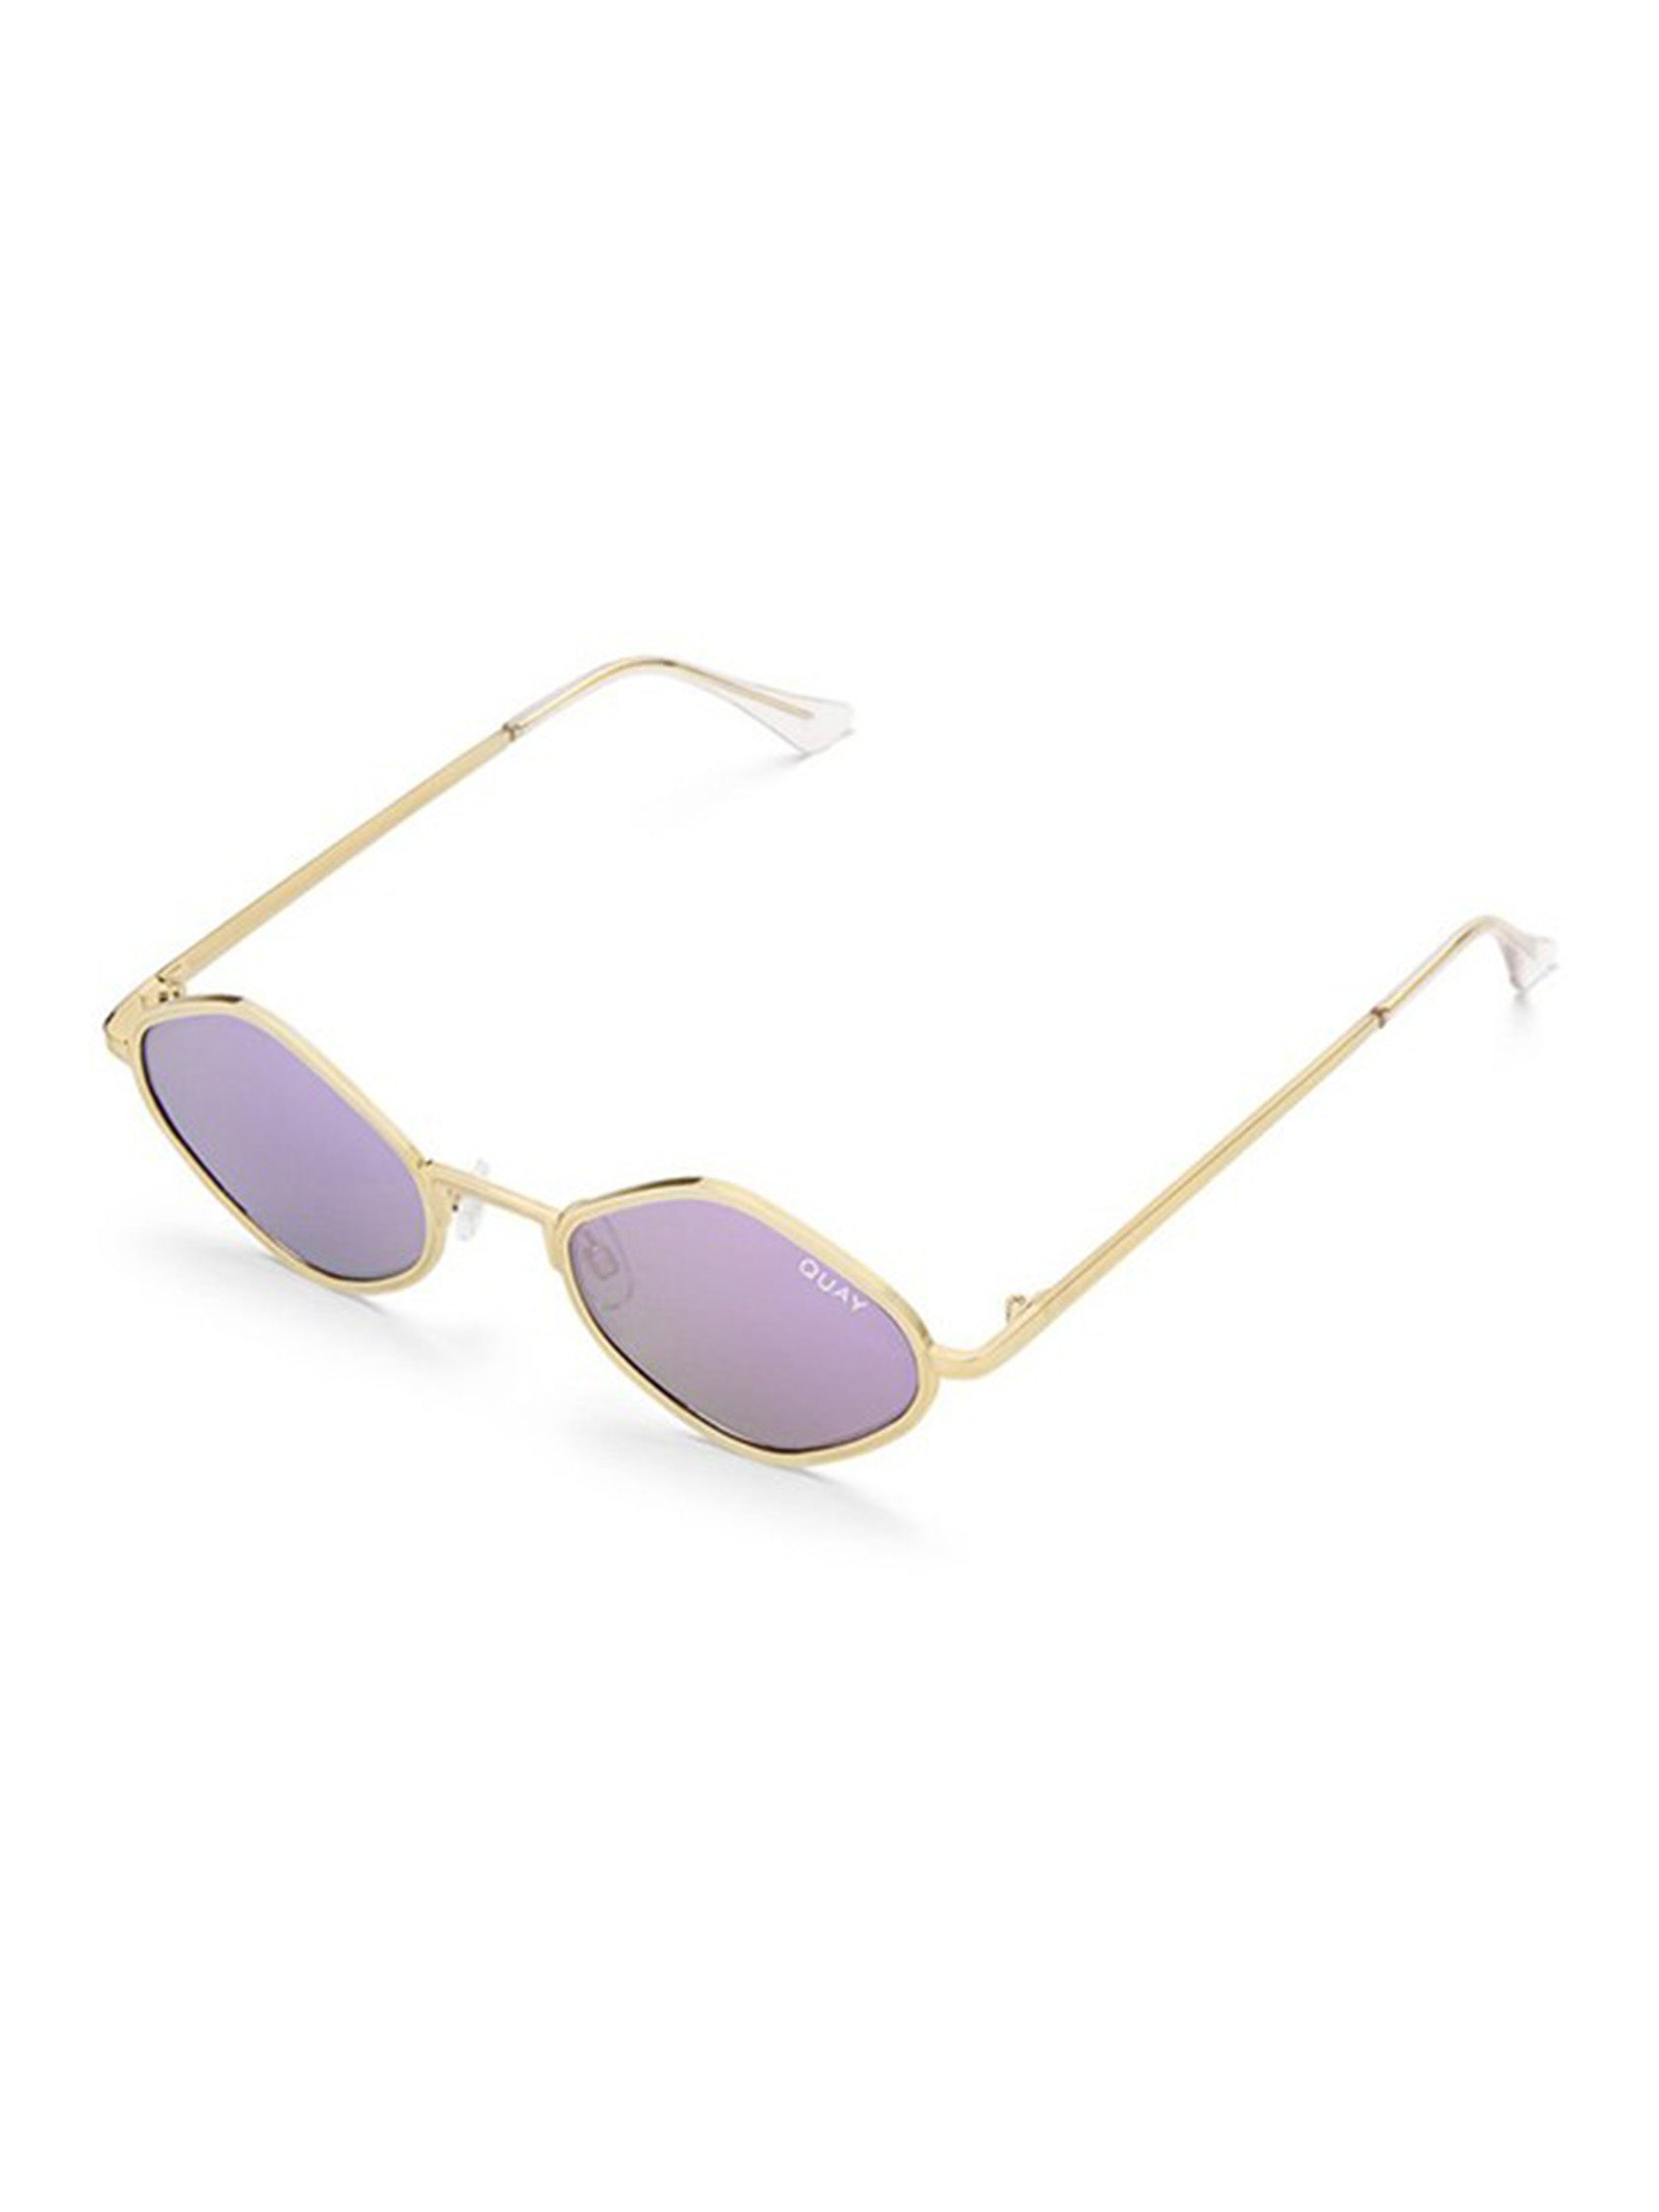 Woman wearing a sunglasses rental from Quay Australia called Purple Honey Sunglasses